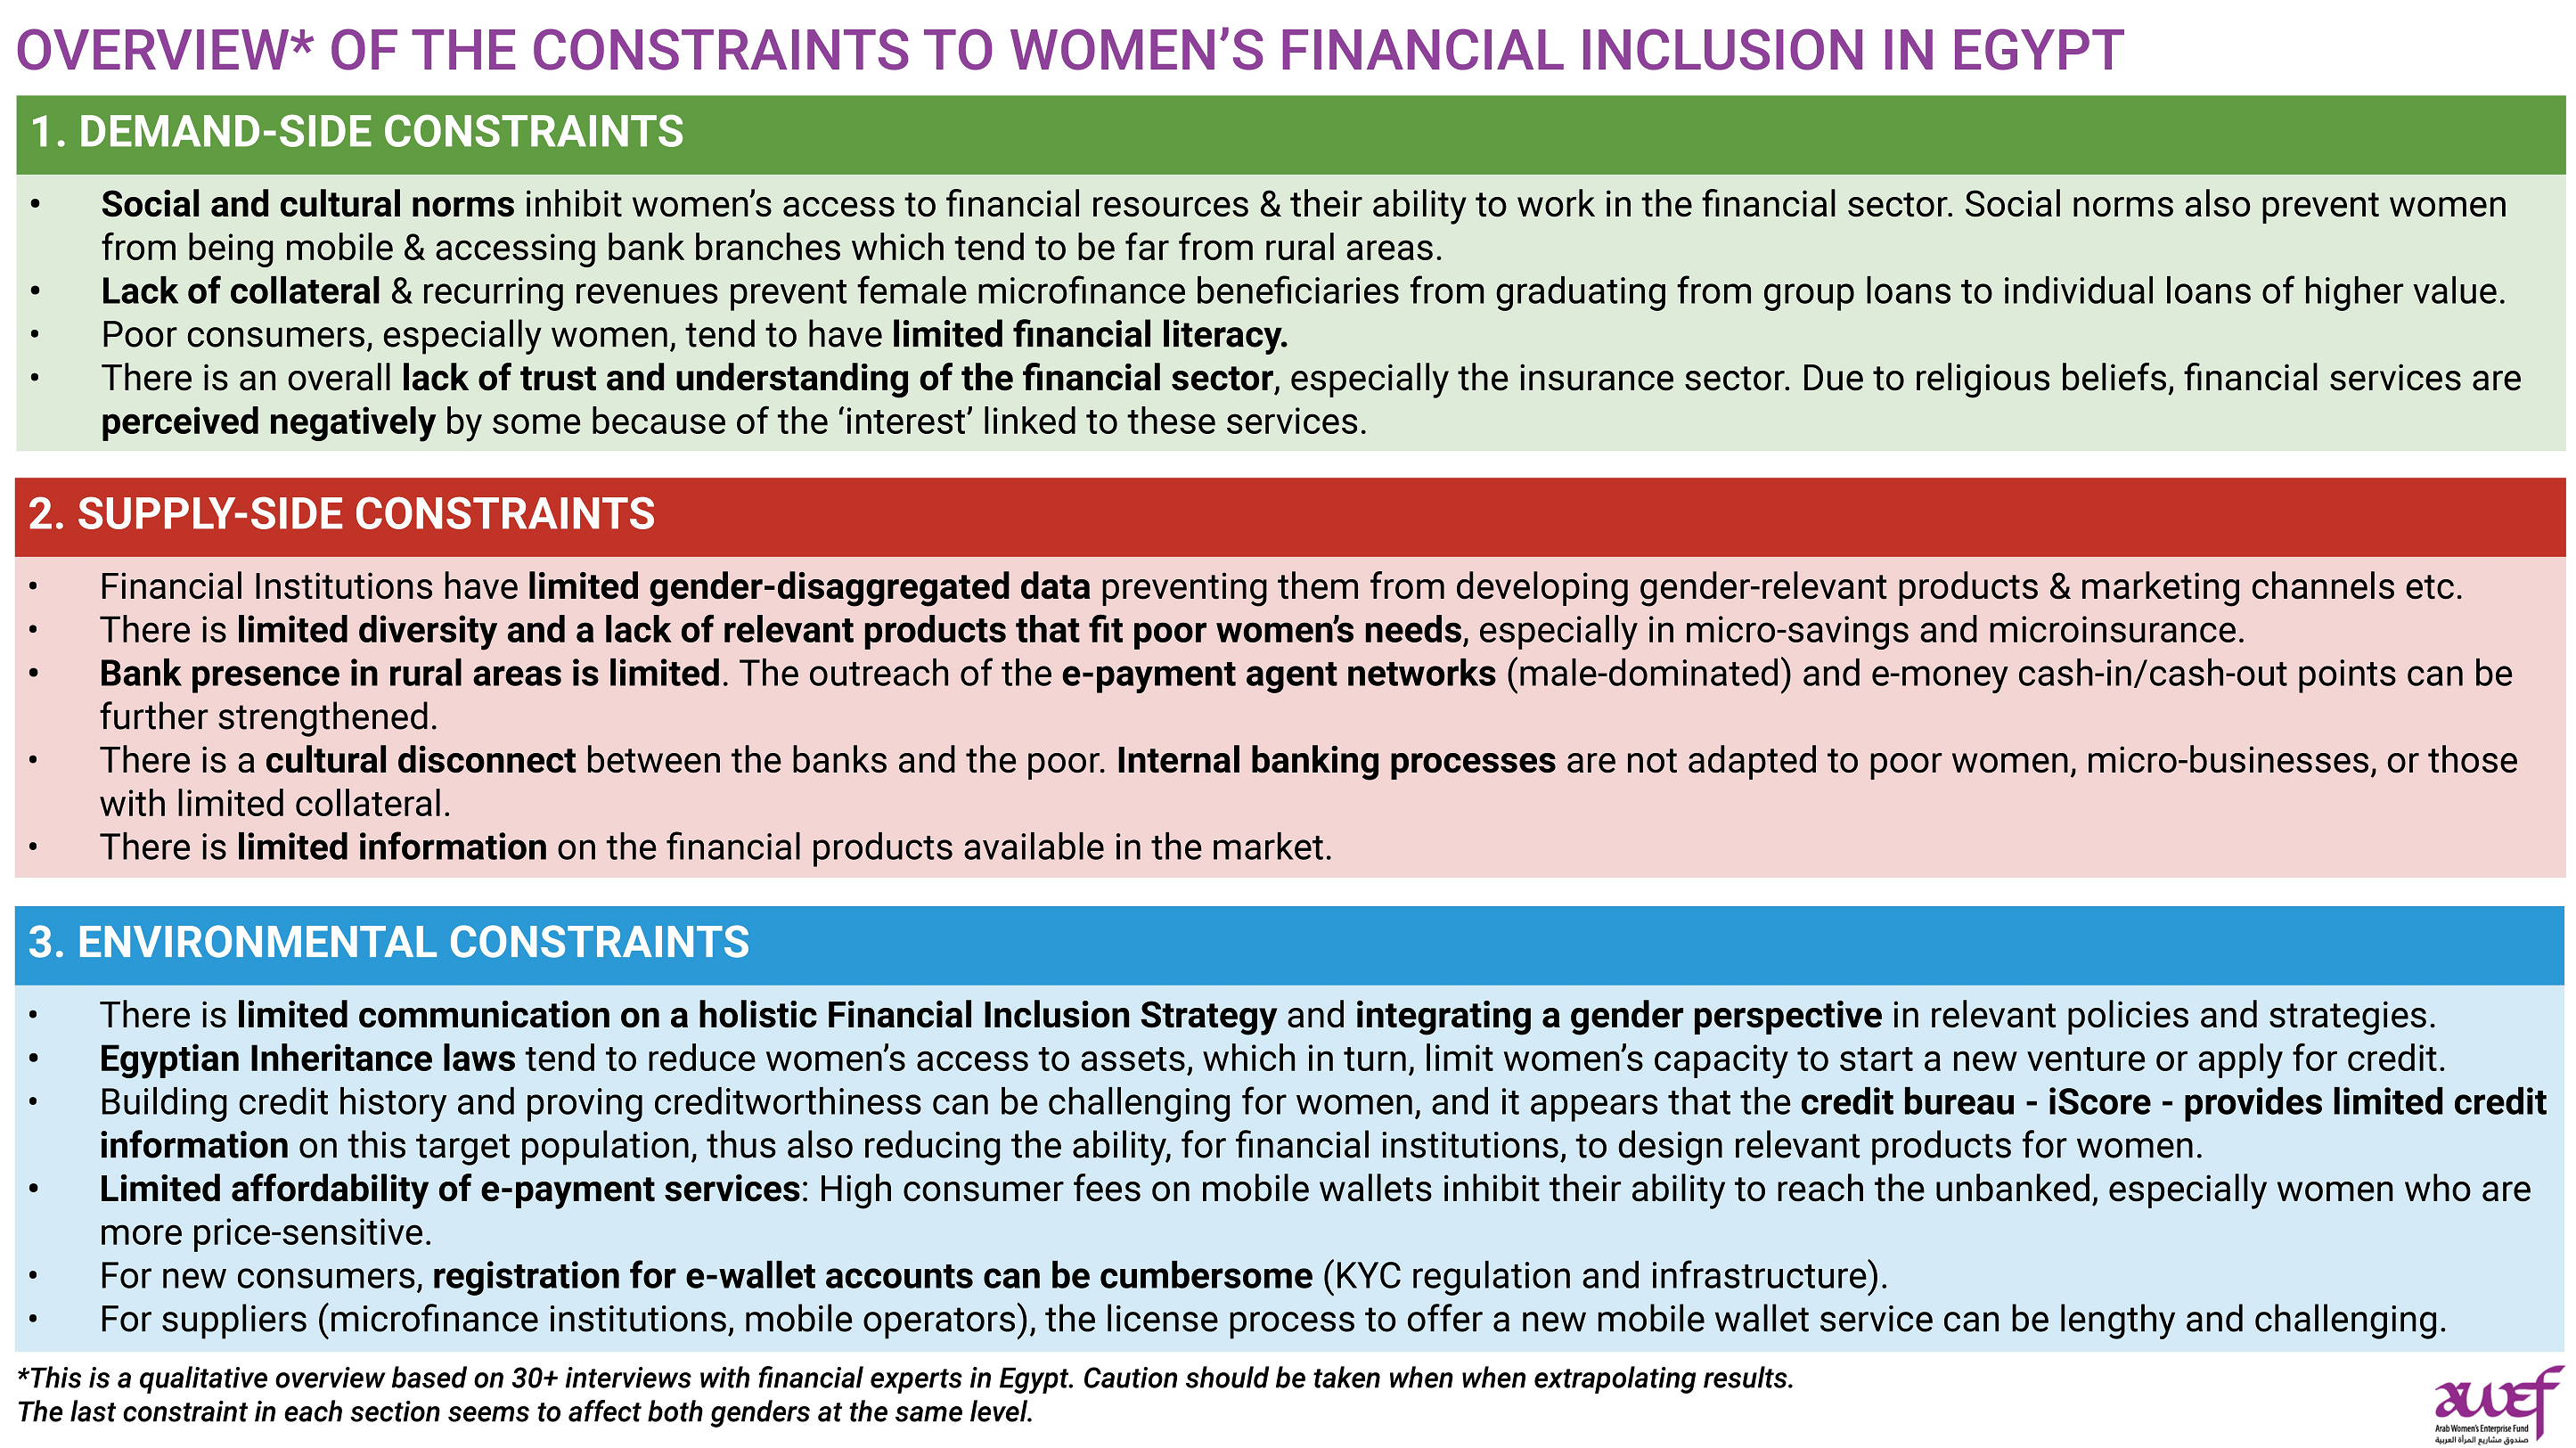 Overview of the constraints to women's financial inclusion in Egypt